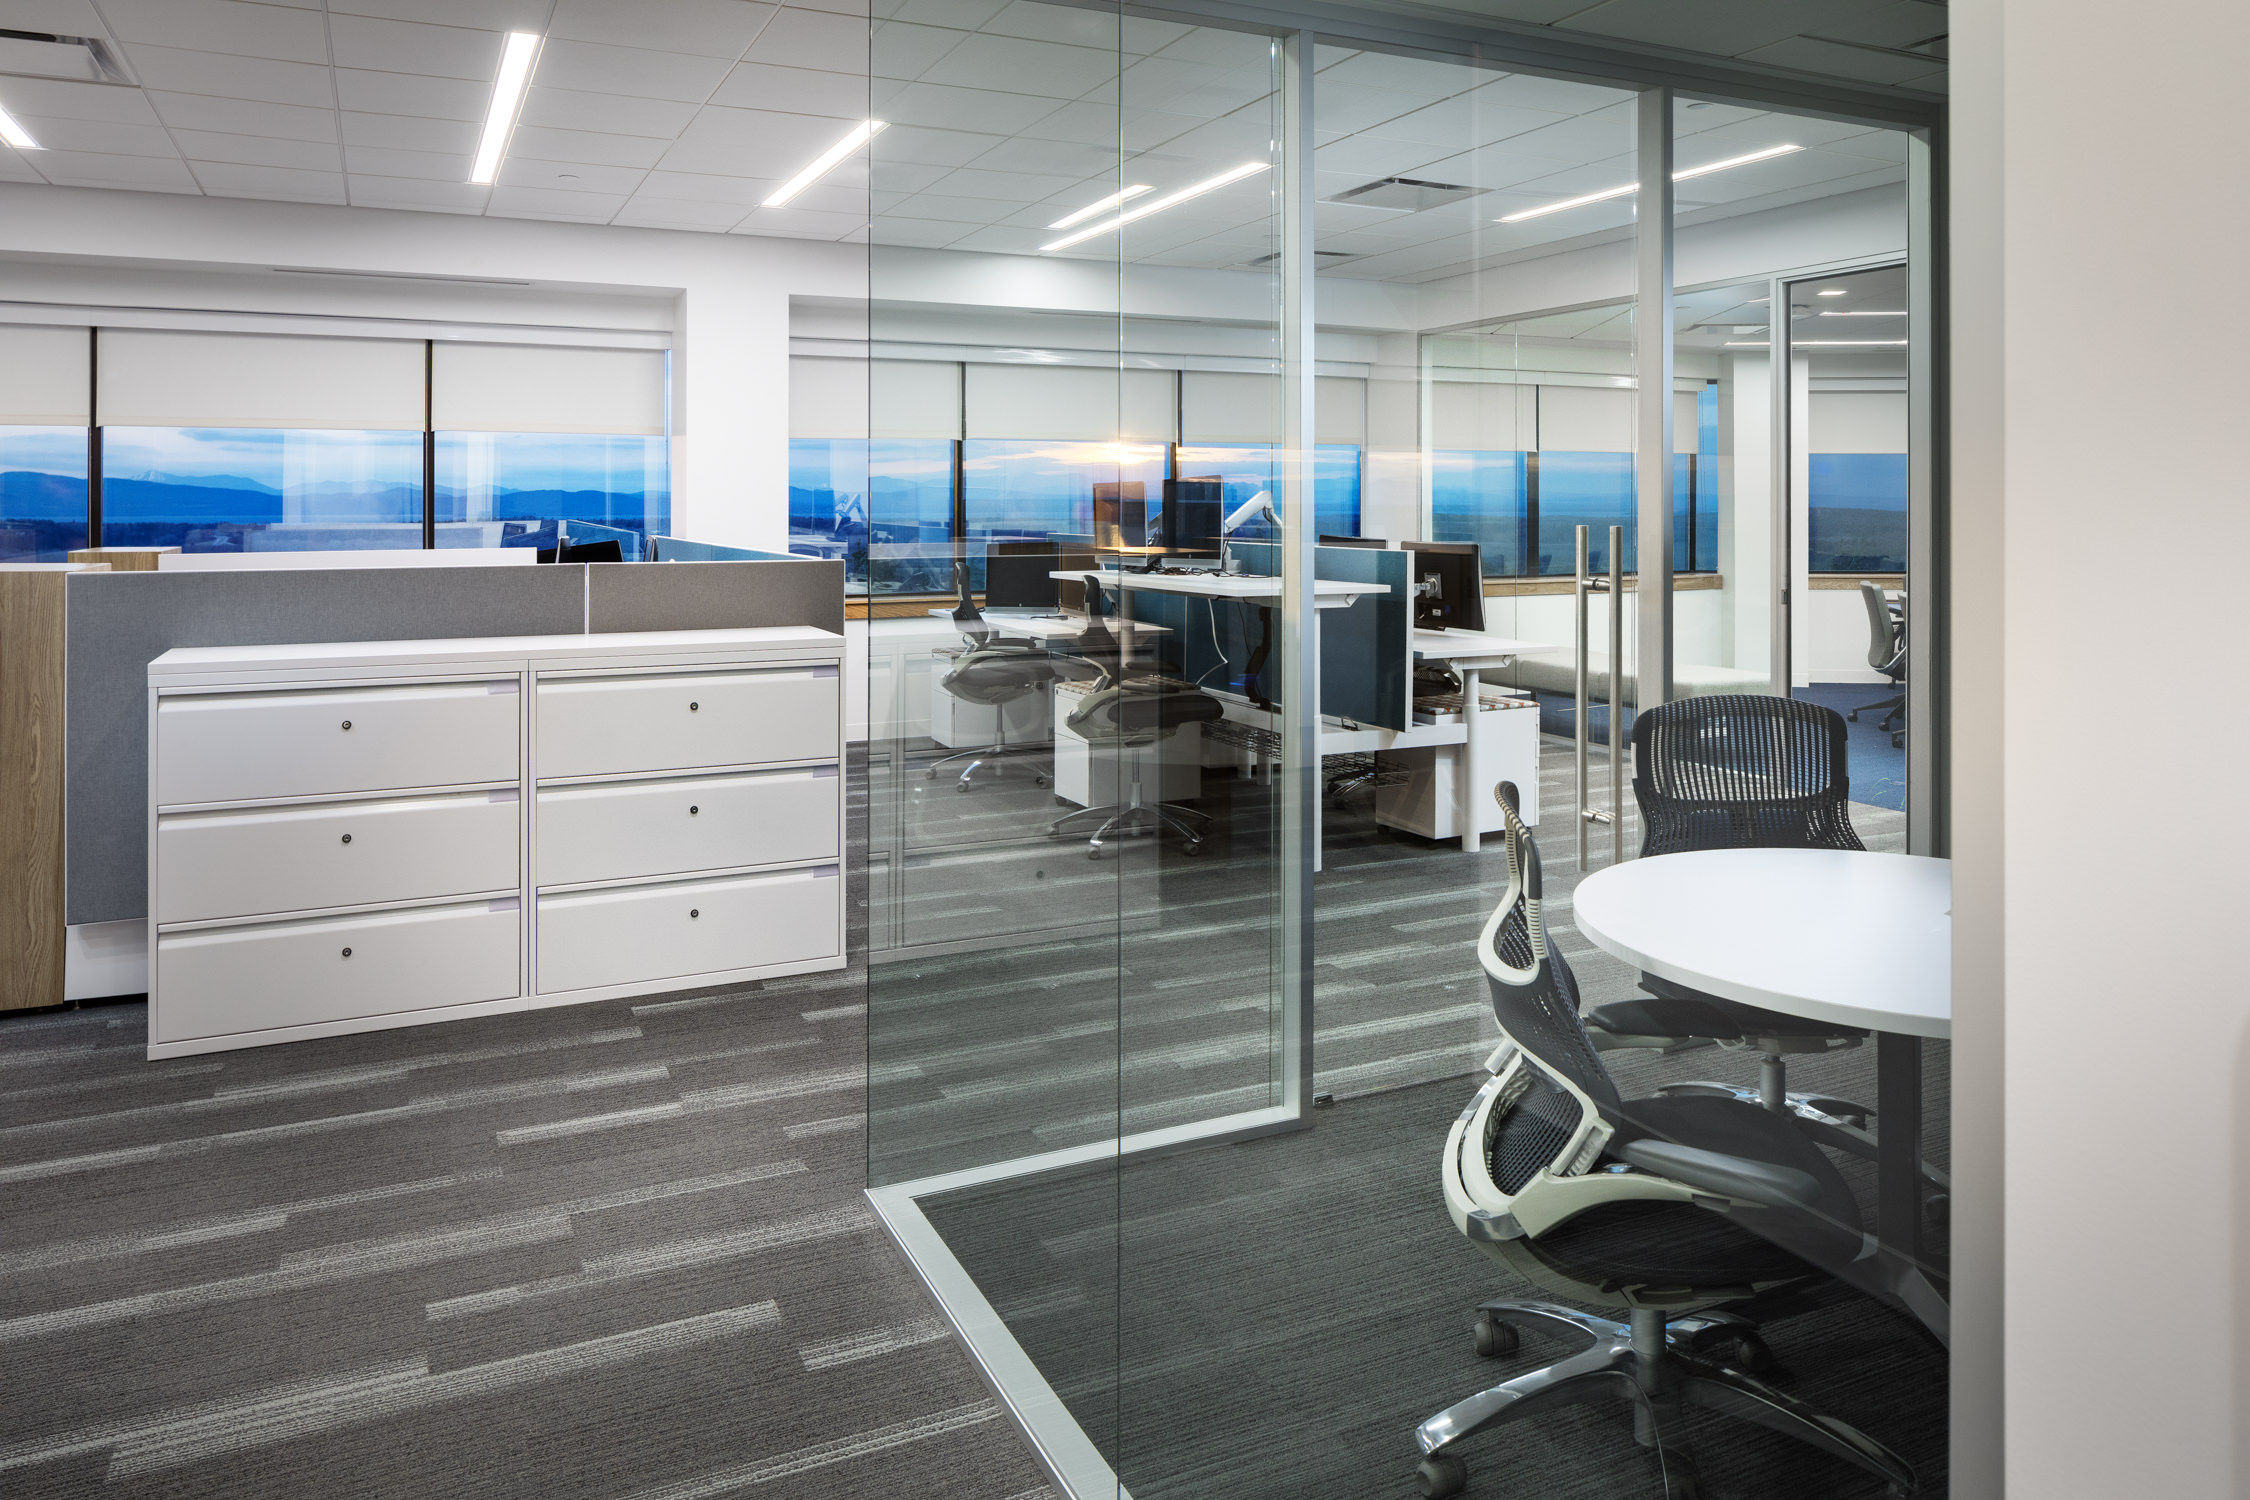 A photo of the cubicle space and view of Lake Champlain in the modern office renovation for the Burlington Vermont office of KPMG by professional photographer Stina Booth